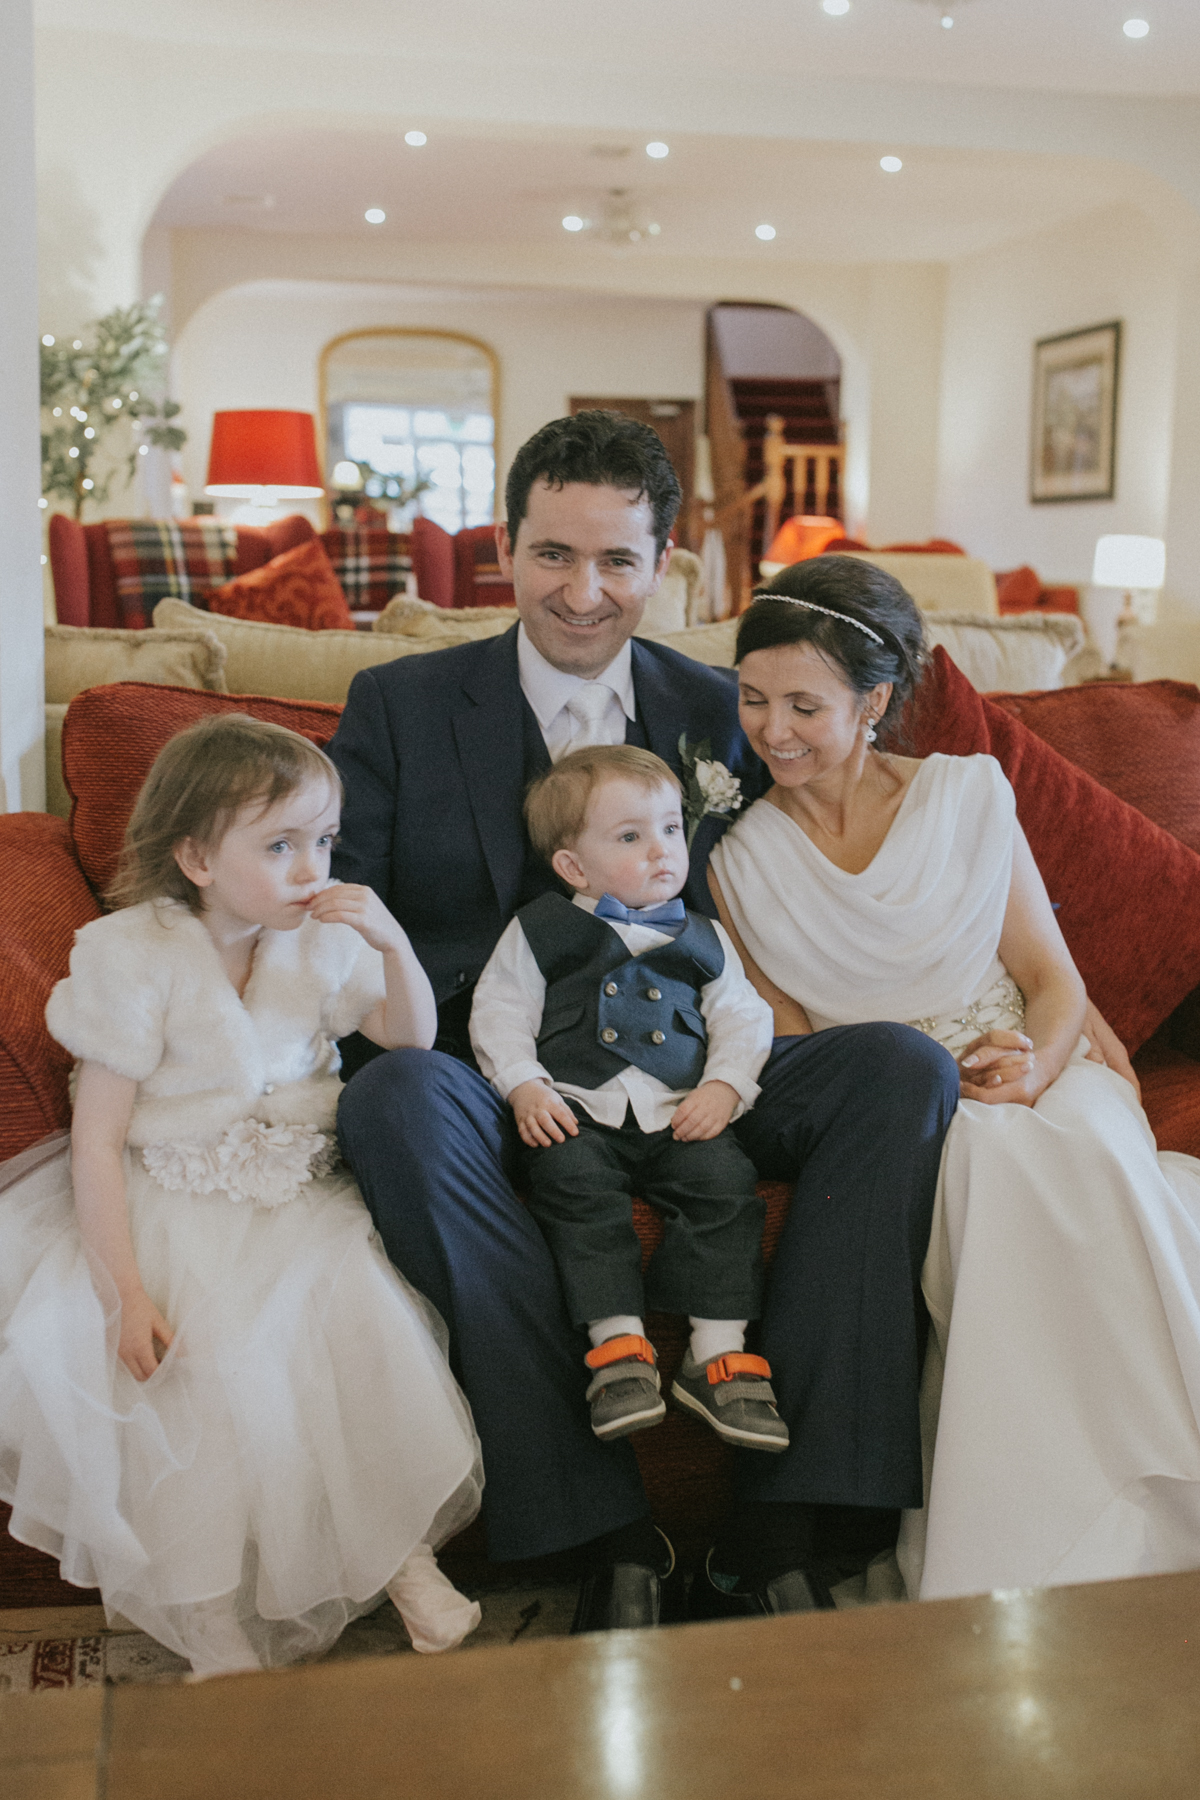 liviafigueiredo_weddingphotography_boyne_hill_house_estate_412.jpg